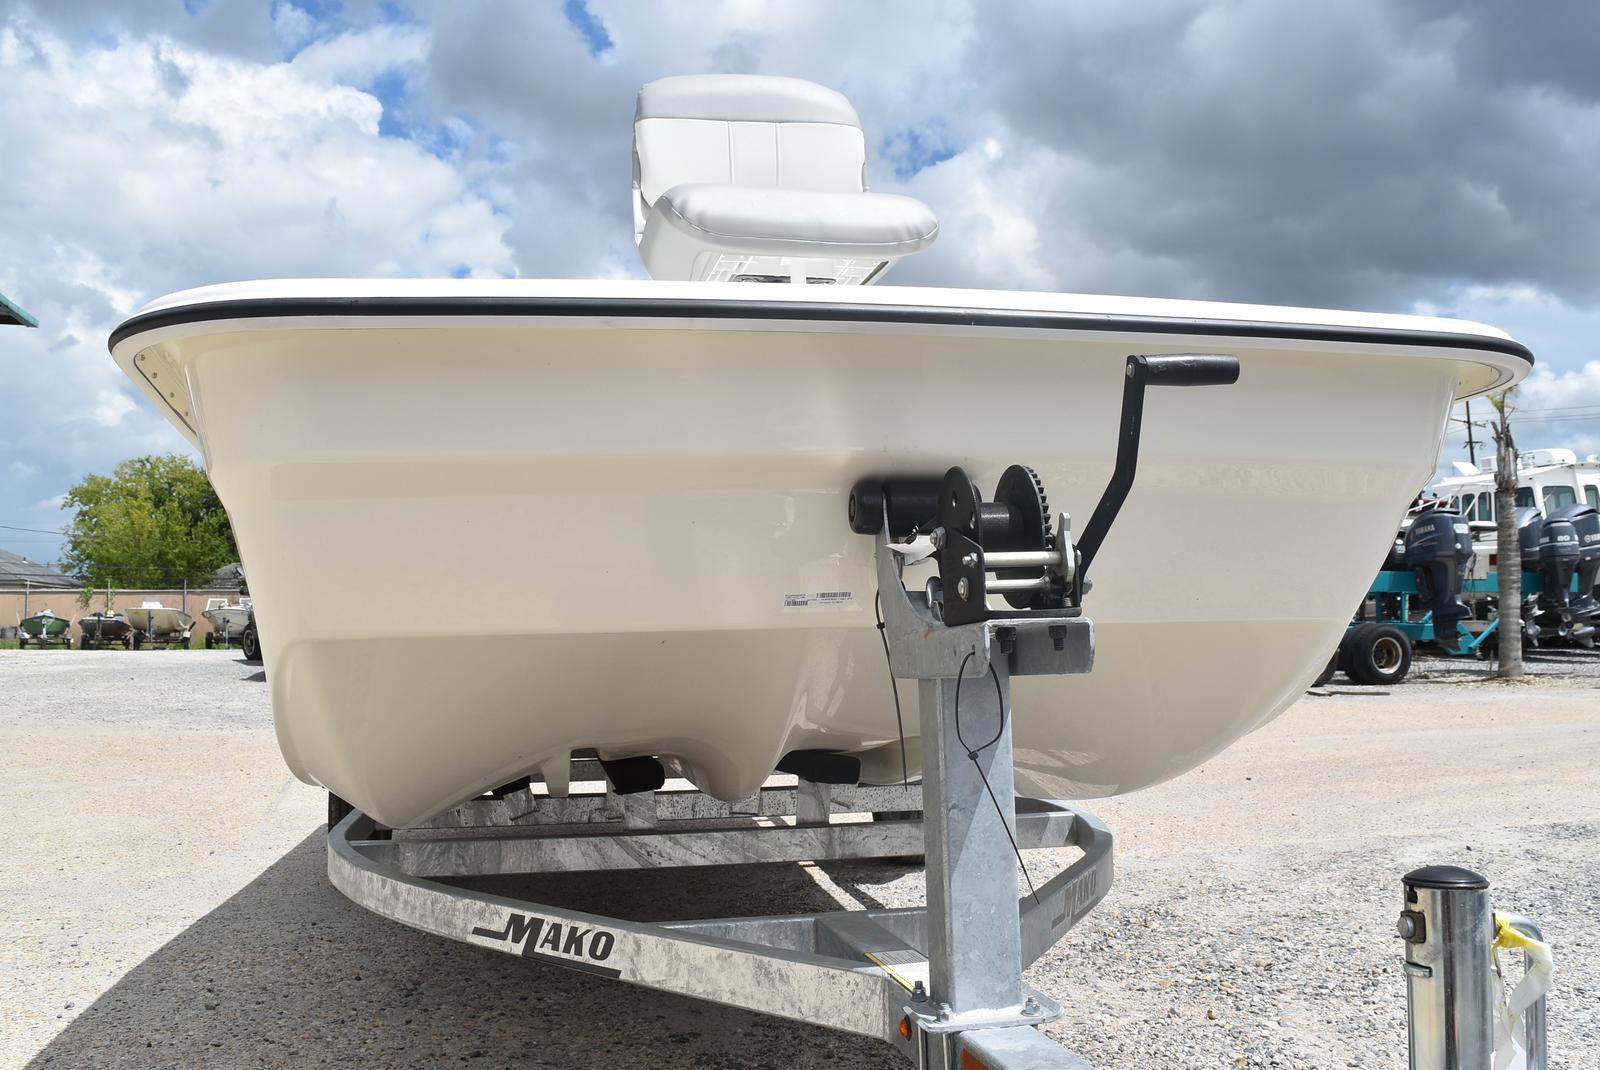 2020 Mako boat for sale, model of the boat is Pro Skiff 17, 75 ELPT & Image # 365 of 702